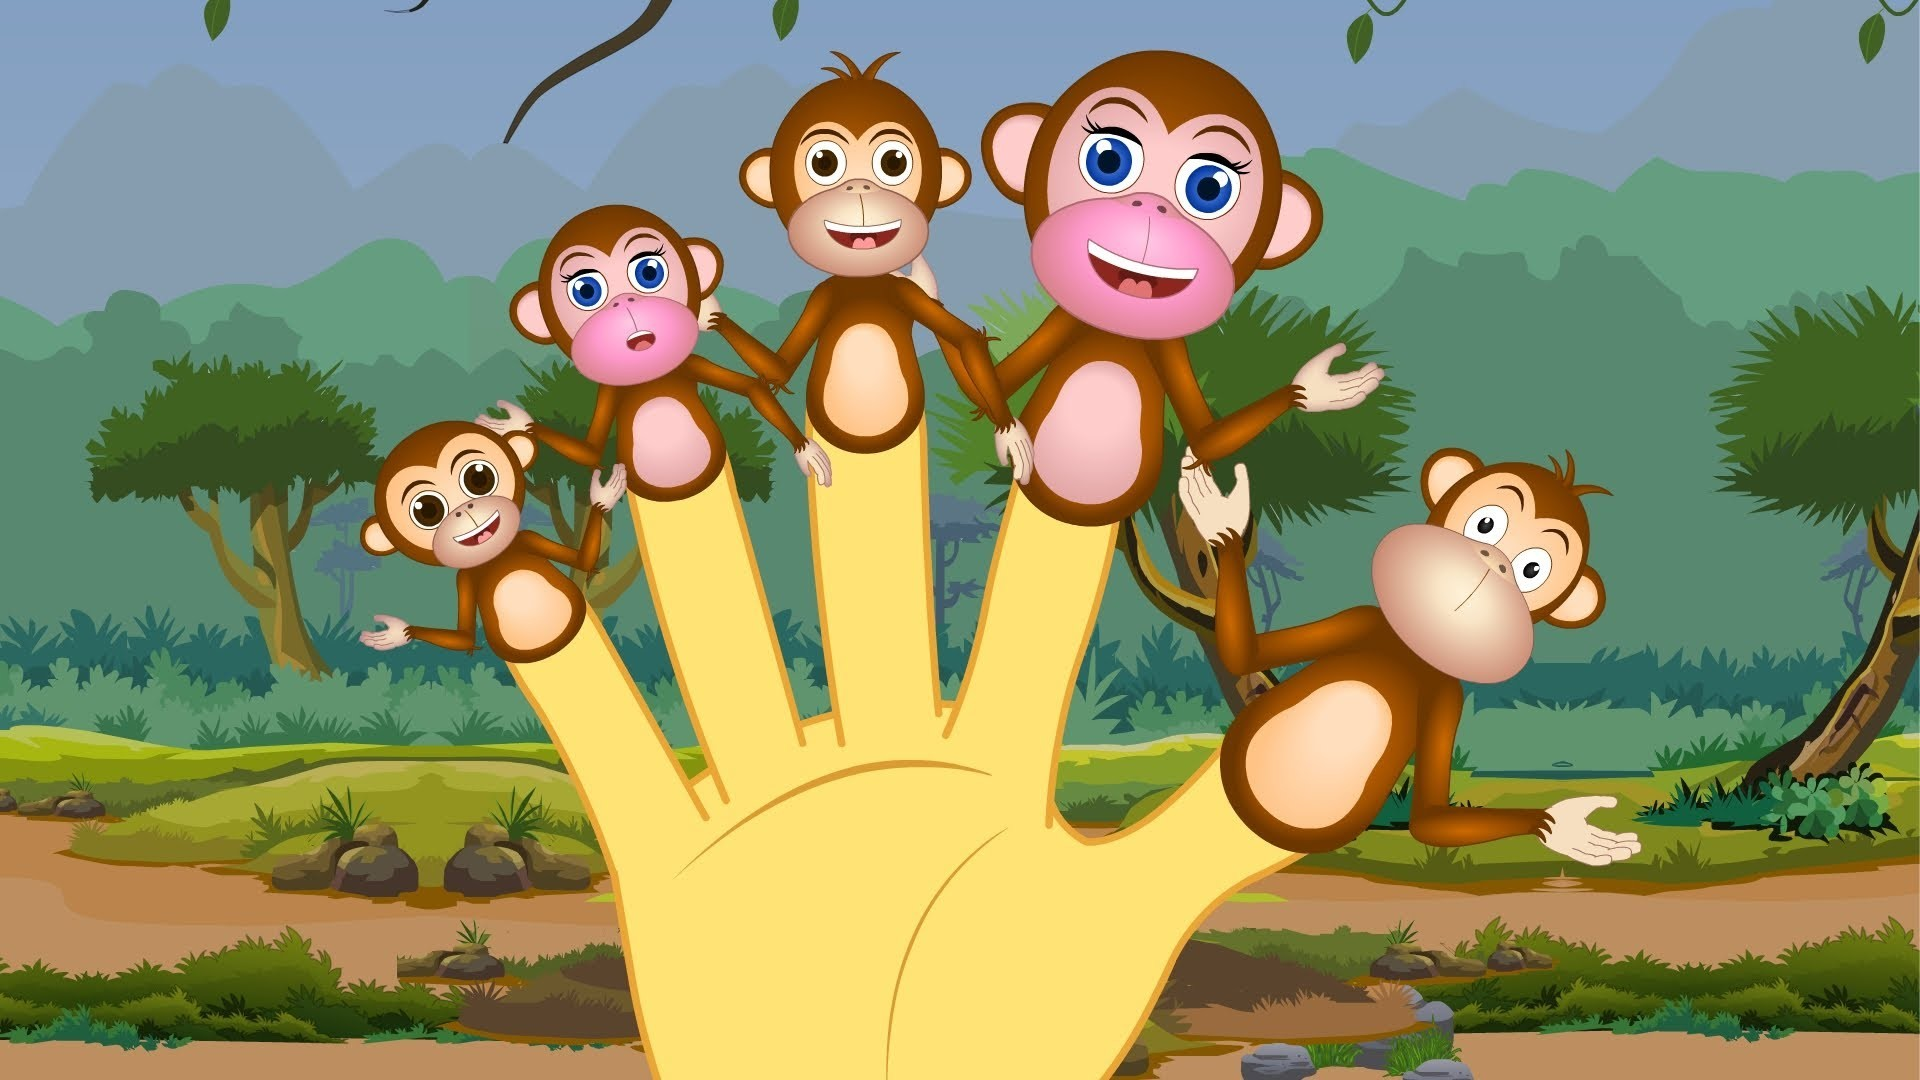 1920x1080 The Finger Family Monkey's Family Nursery Rhyme | Finger Family Songs For  Children - YouTube